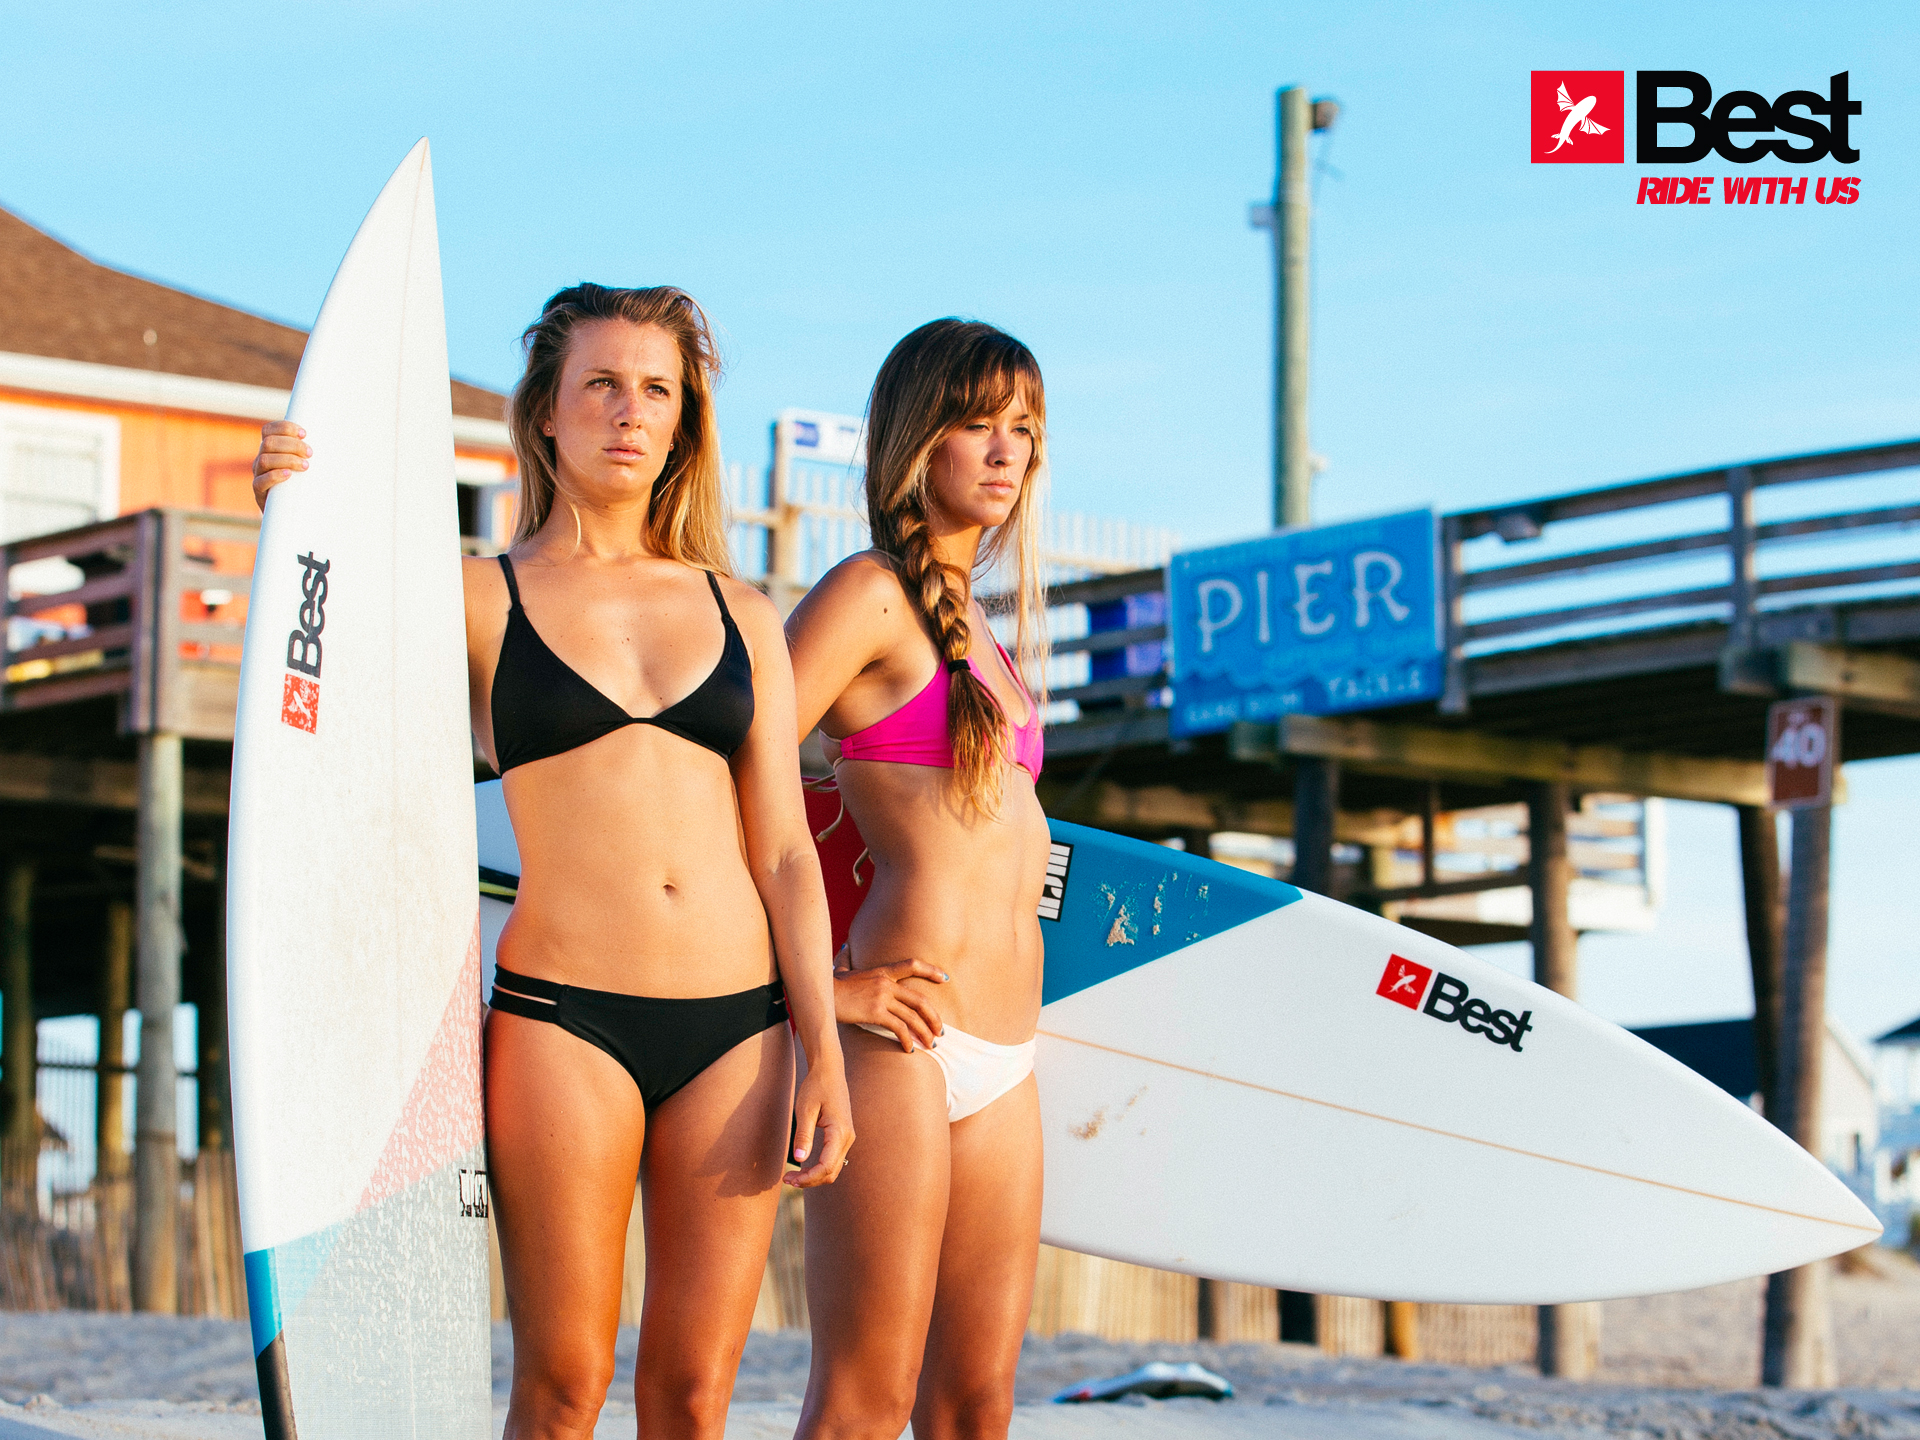 kitesurf wallpaper image - Two Best Kiteboarding kitechicks in bikini with surfboards looking to take a ride - in resolution: Standard 4:3 1920 X 1440